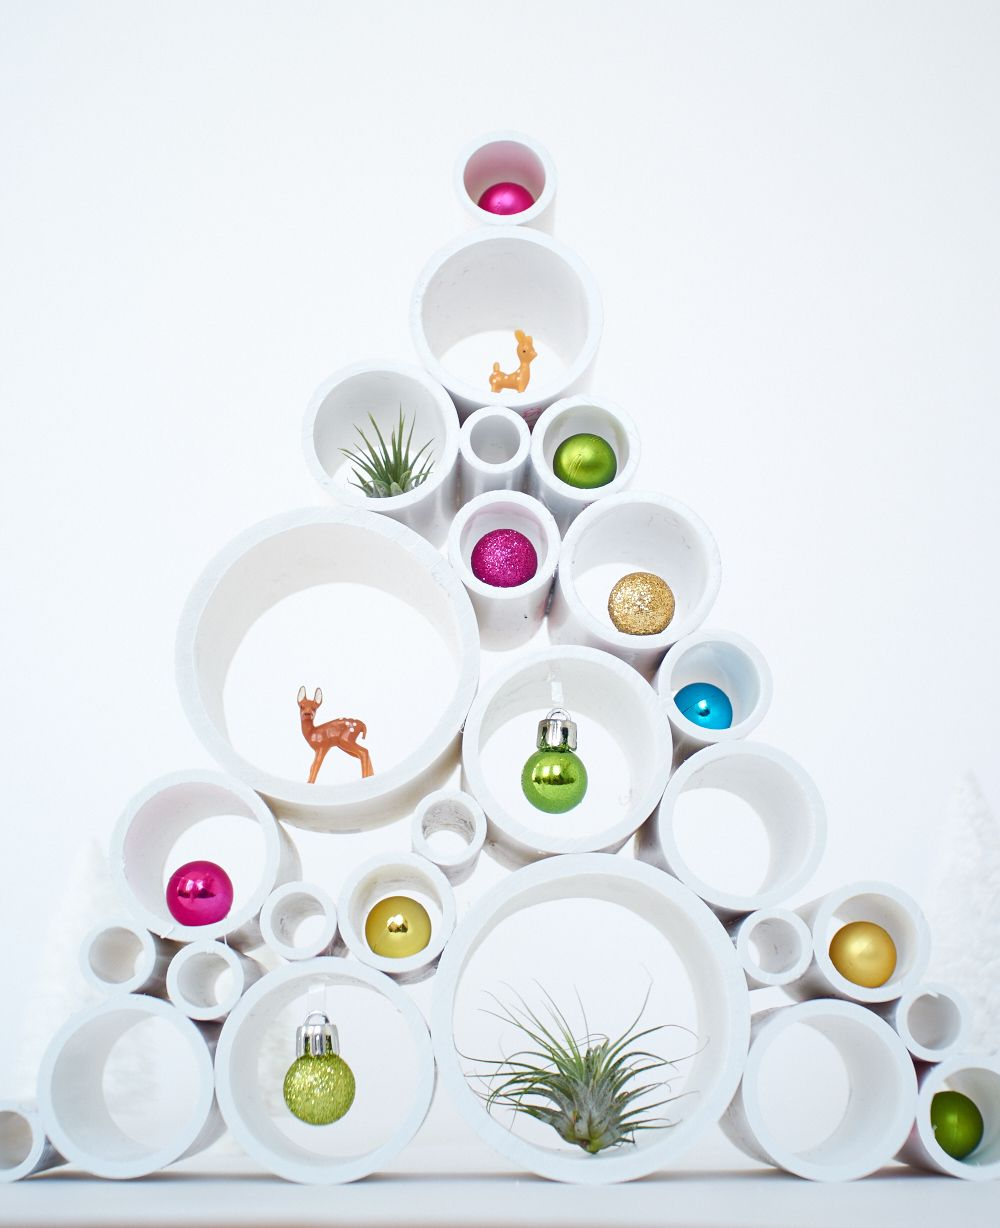 How To: Make a PVC Pipe Small-Scale Christmas Tree | DIY Holiday ...